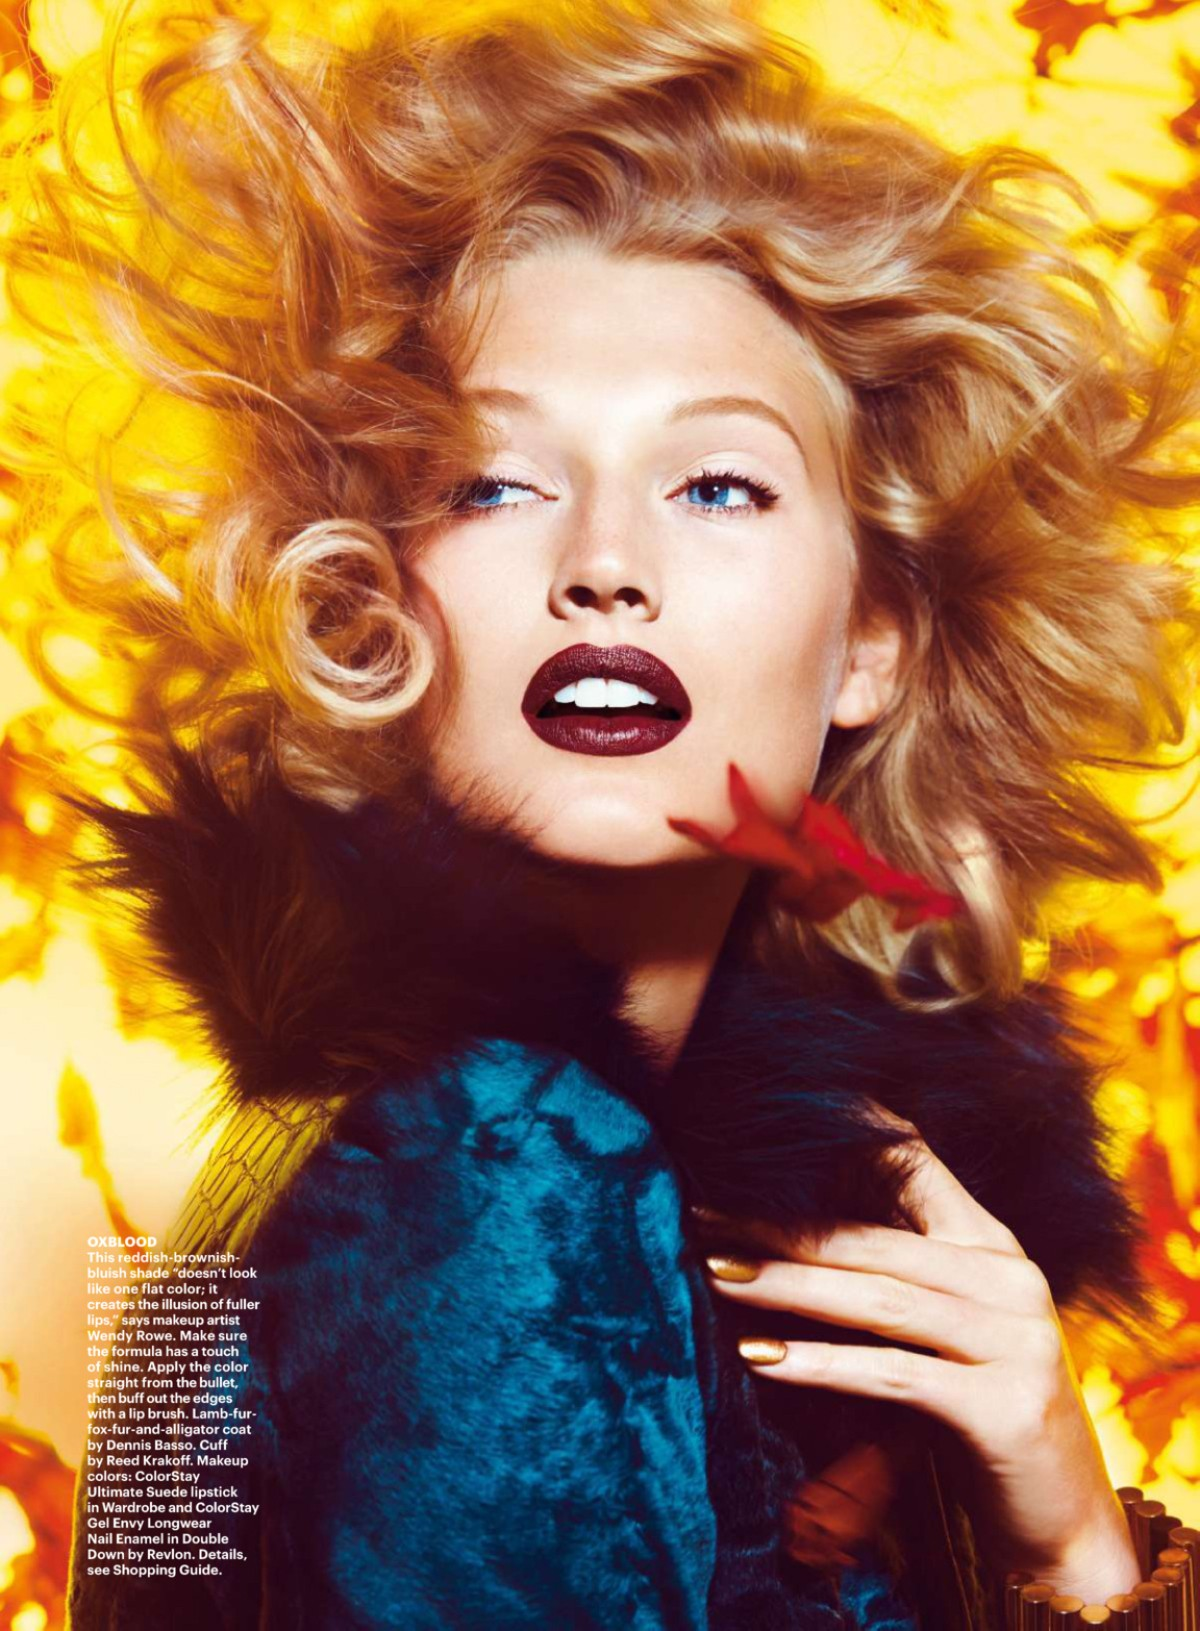 Toni-Garrn-by-Camilla-Âkrans-for-Allure-November-2014-2